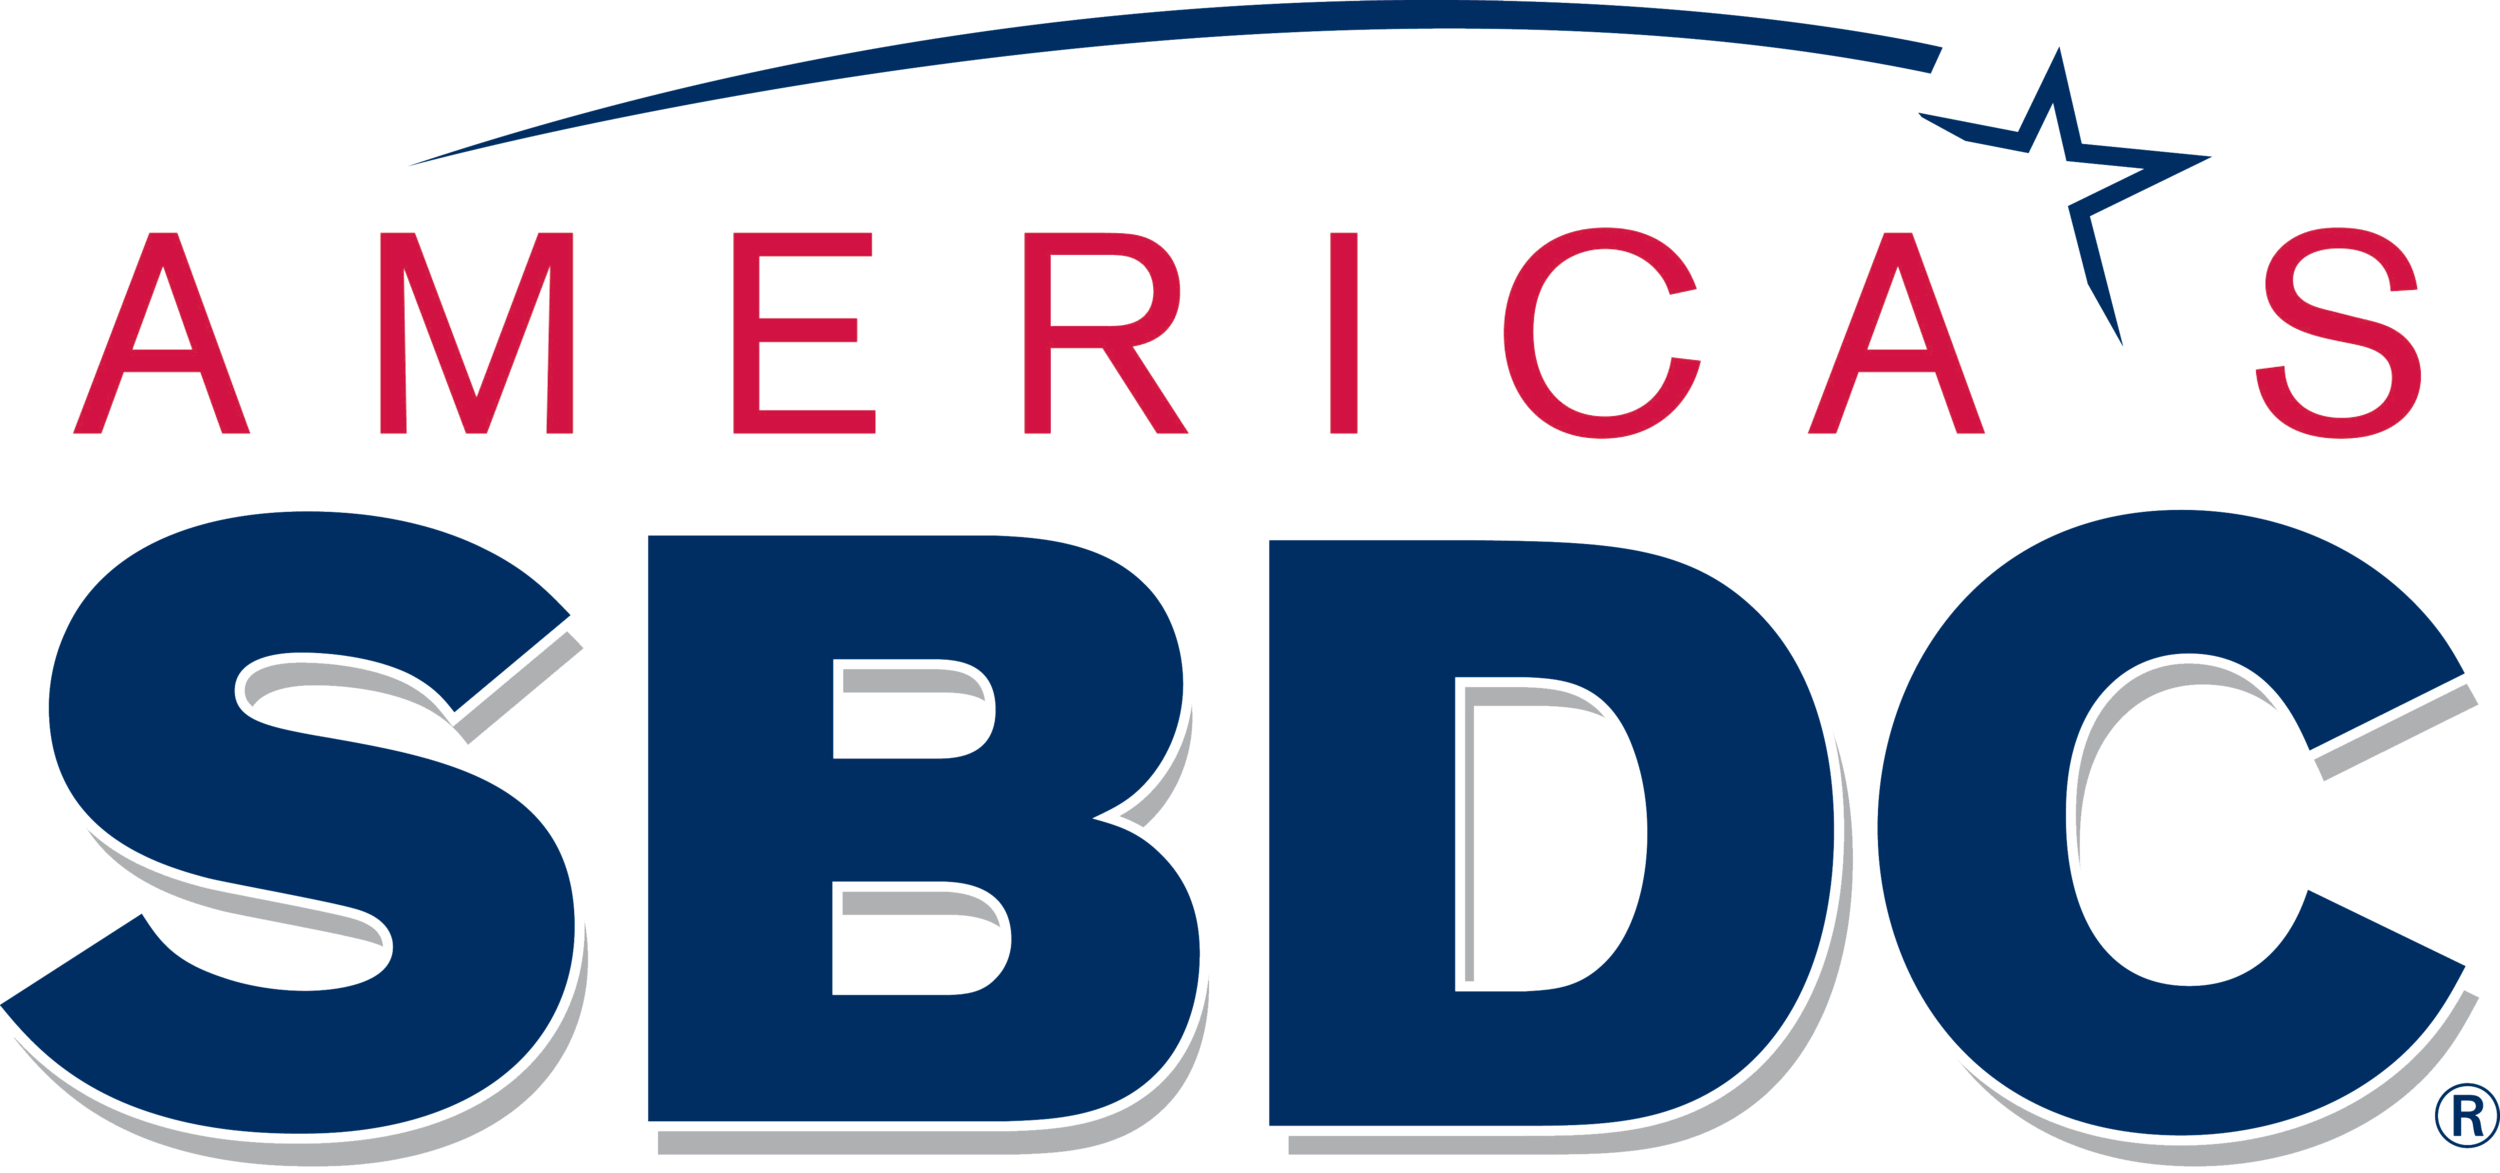 SBDC-color.png